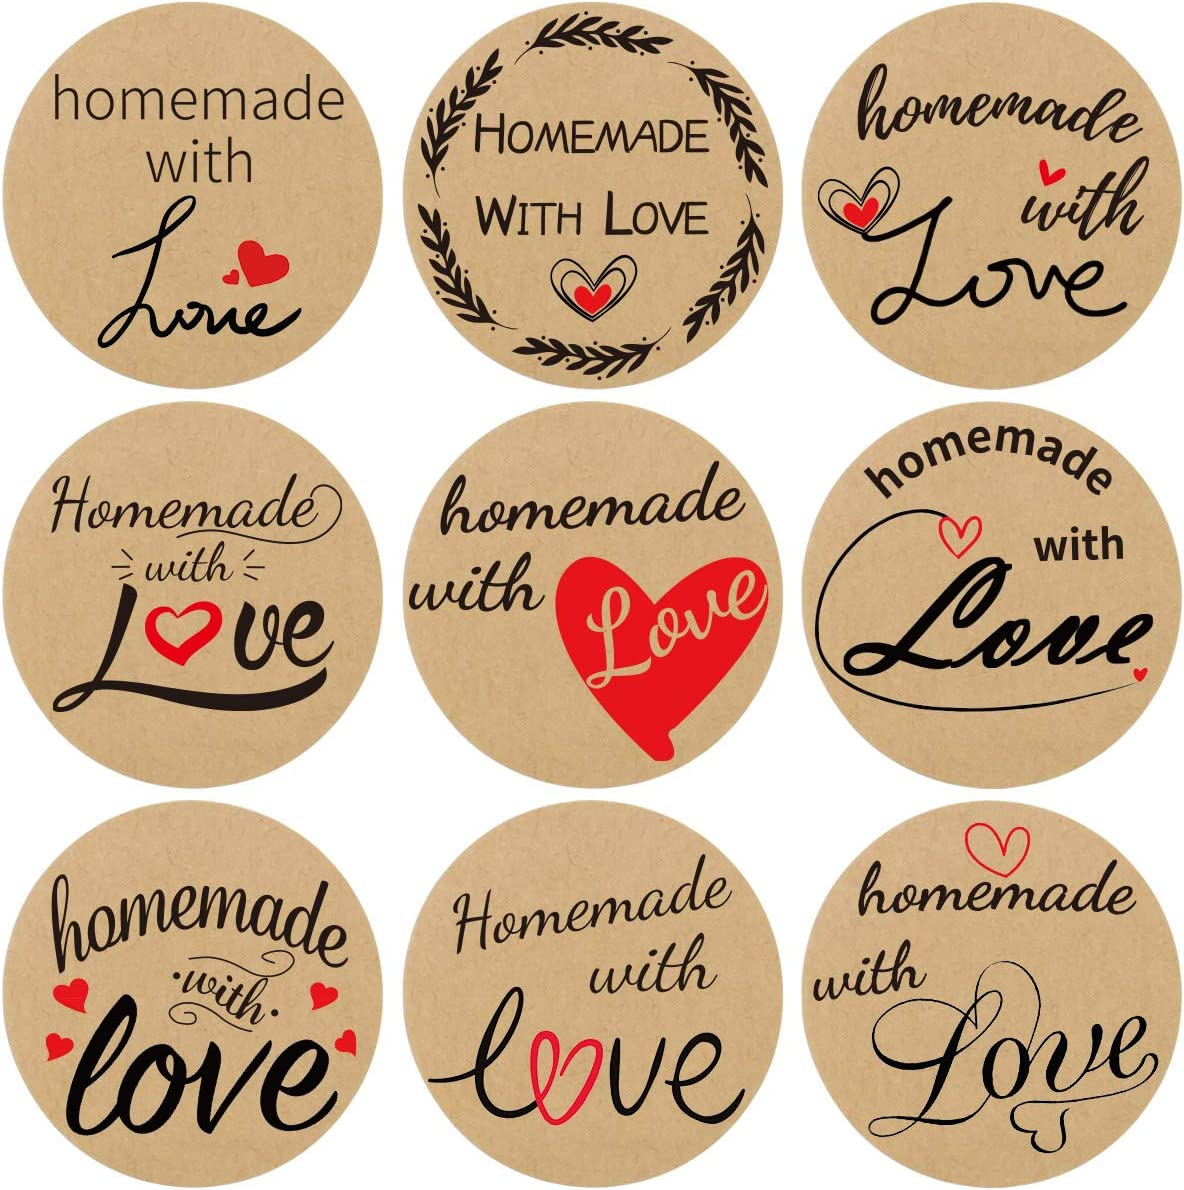 500Pcs Homemade with Love Stickers Perforated Roll Sticker Labels Home Kitchen Stickers 1.5 Inch 9 Designs